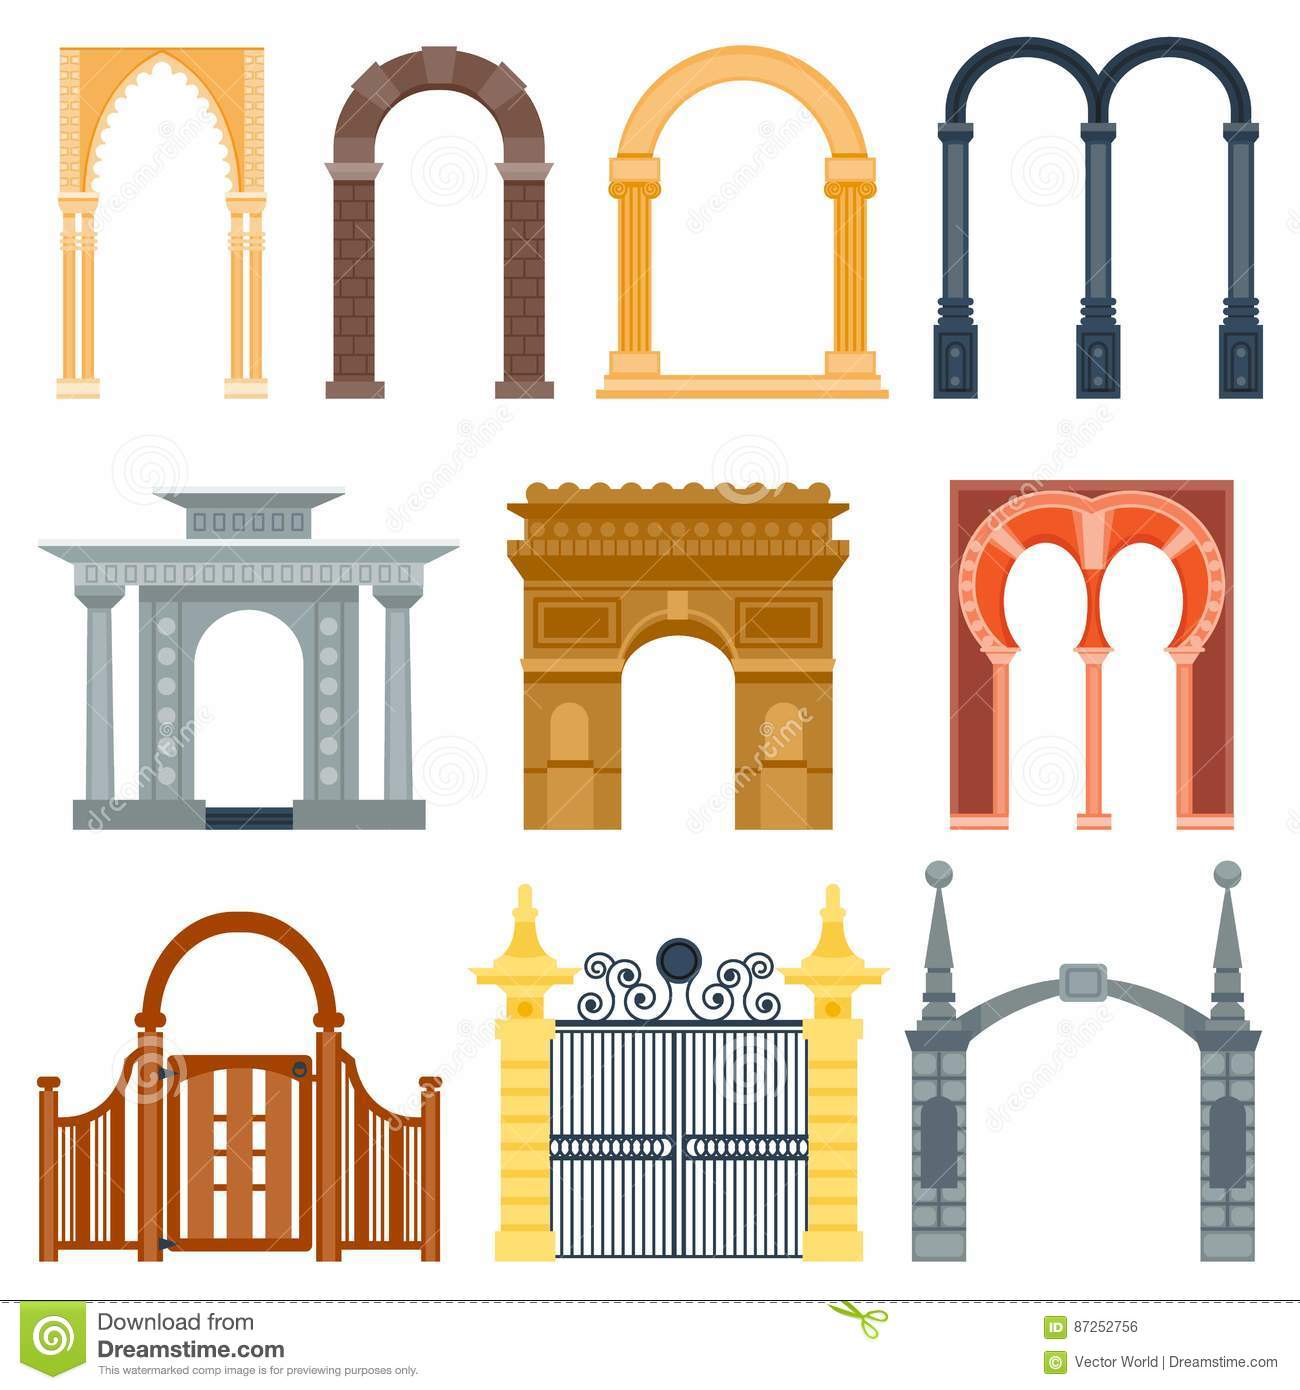 Arch design architecture construction frame classic for Architecture by design